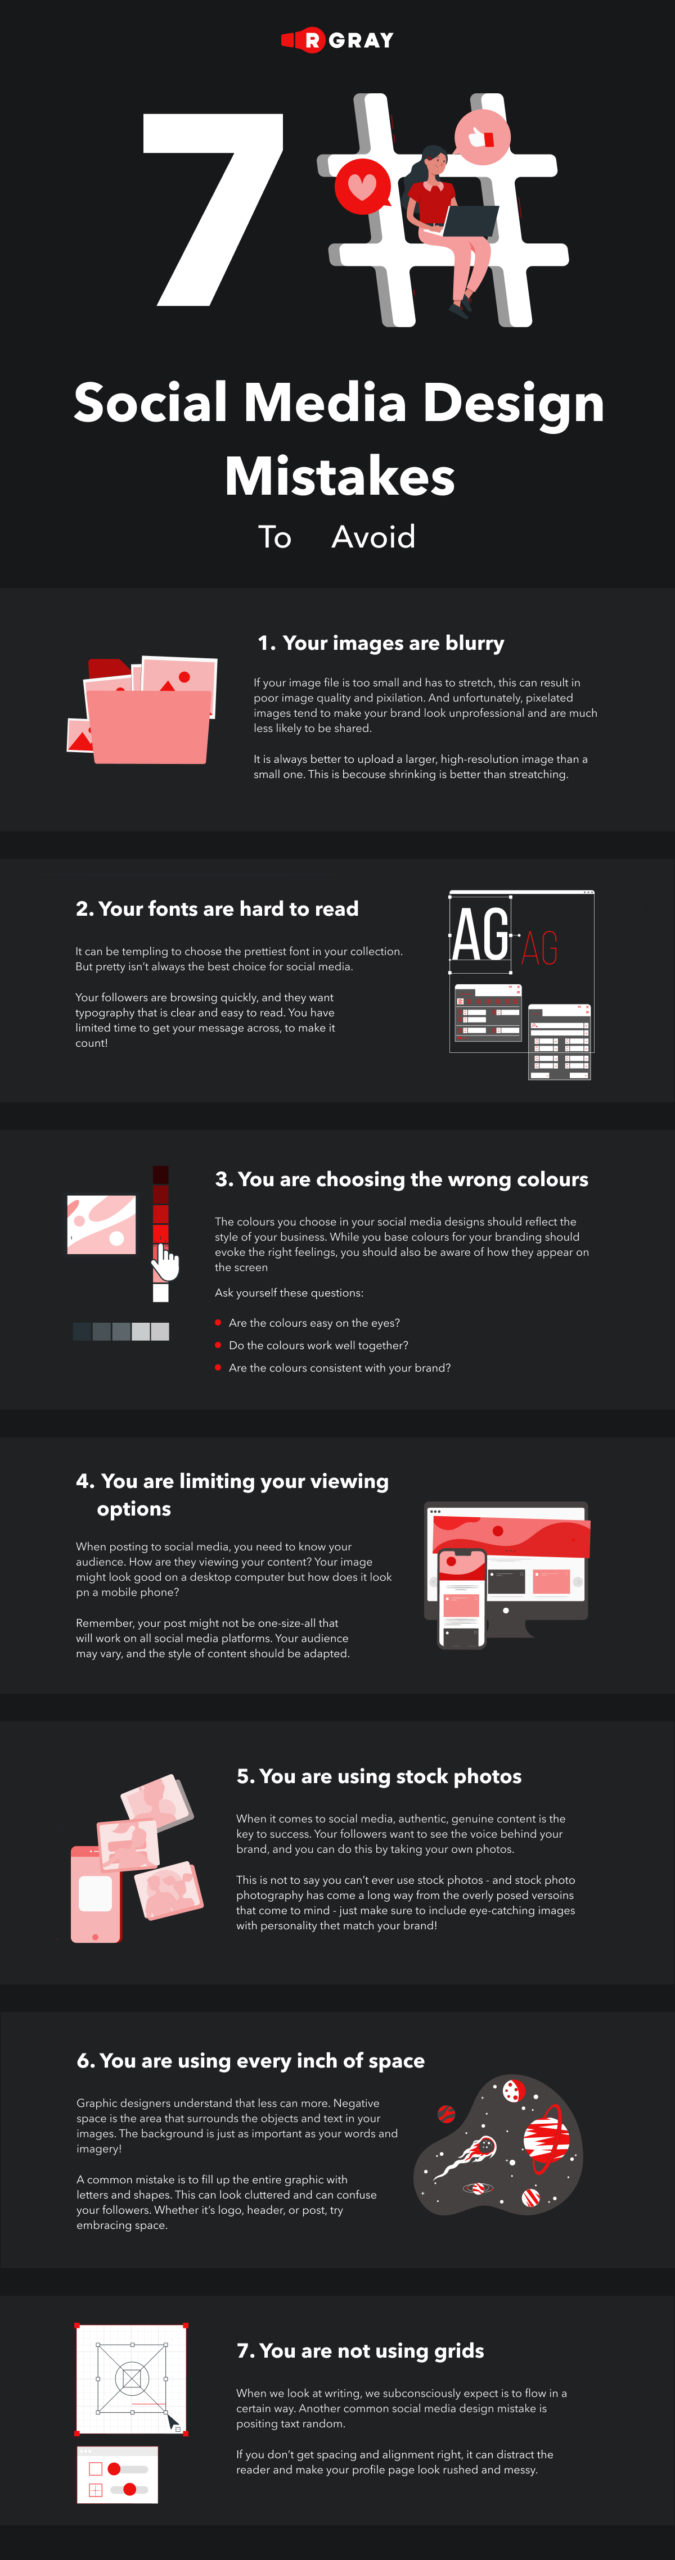 7 Social Media Design Mistakes That All Marketers Need to Avoid [Infographic]